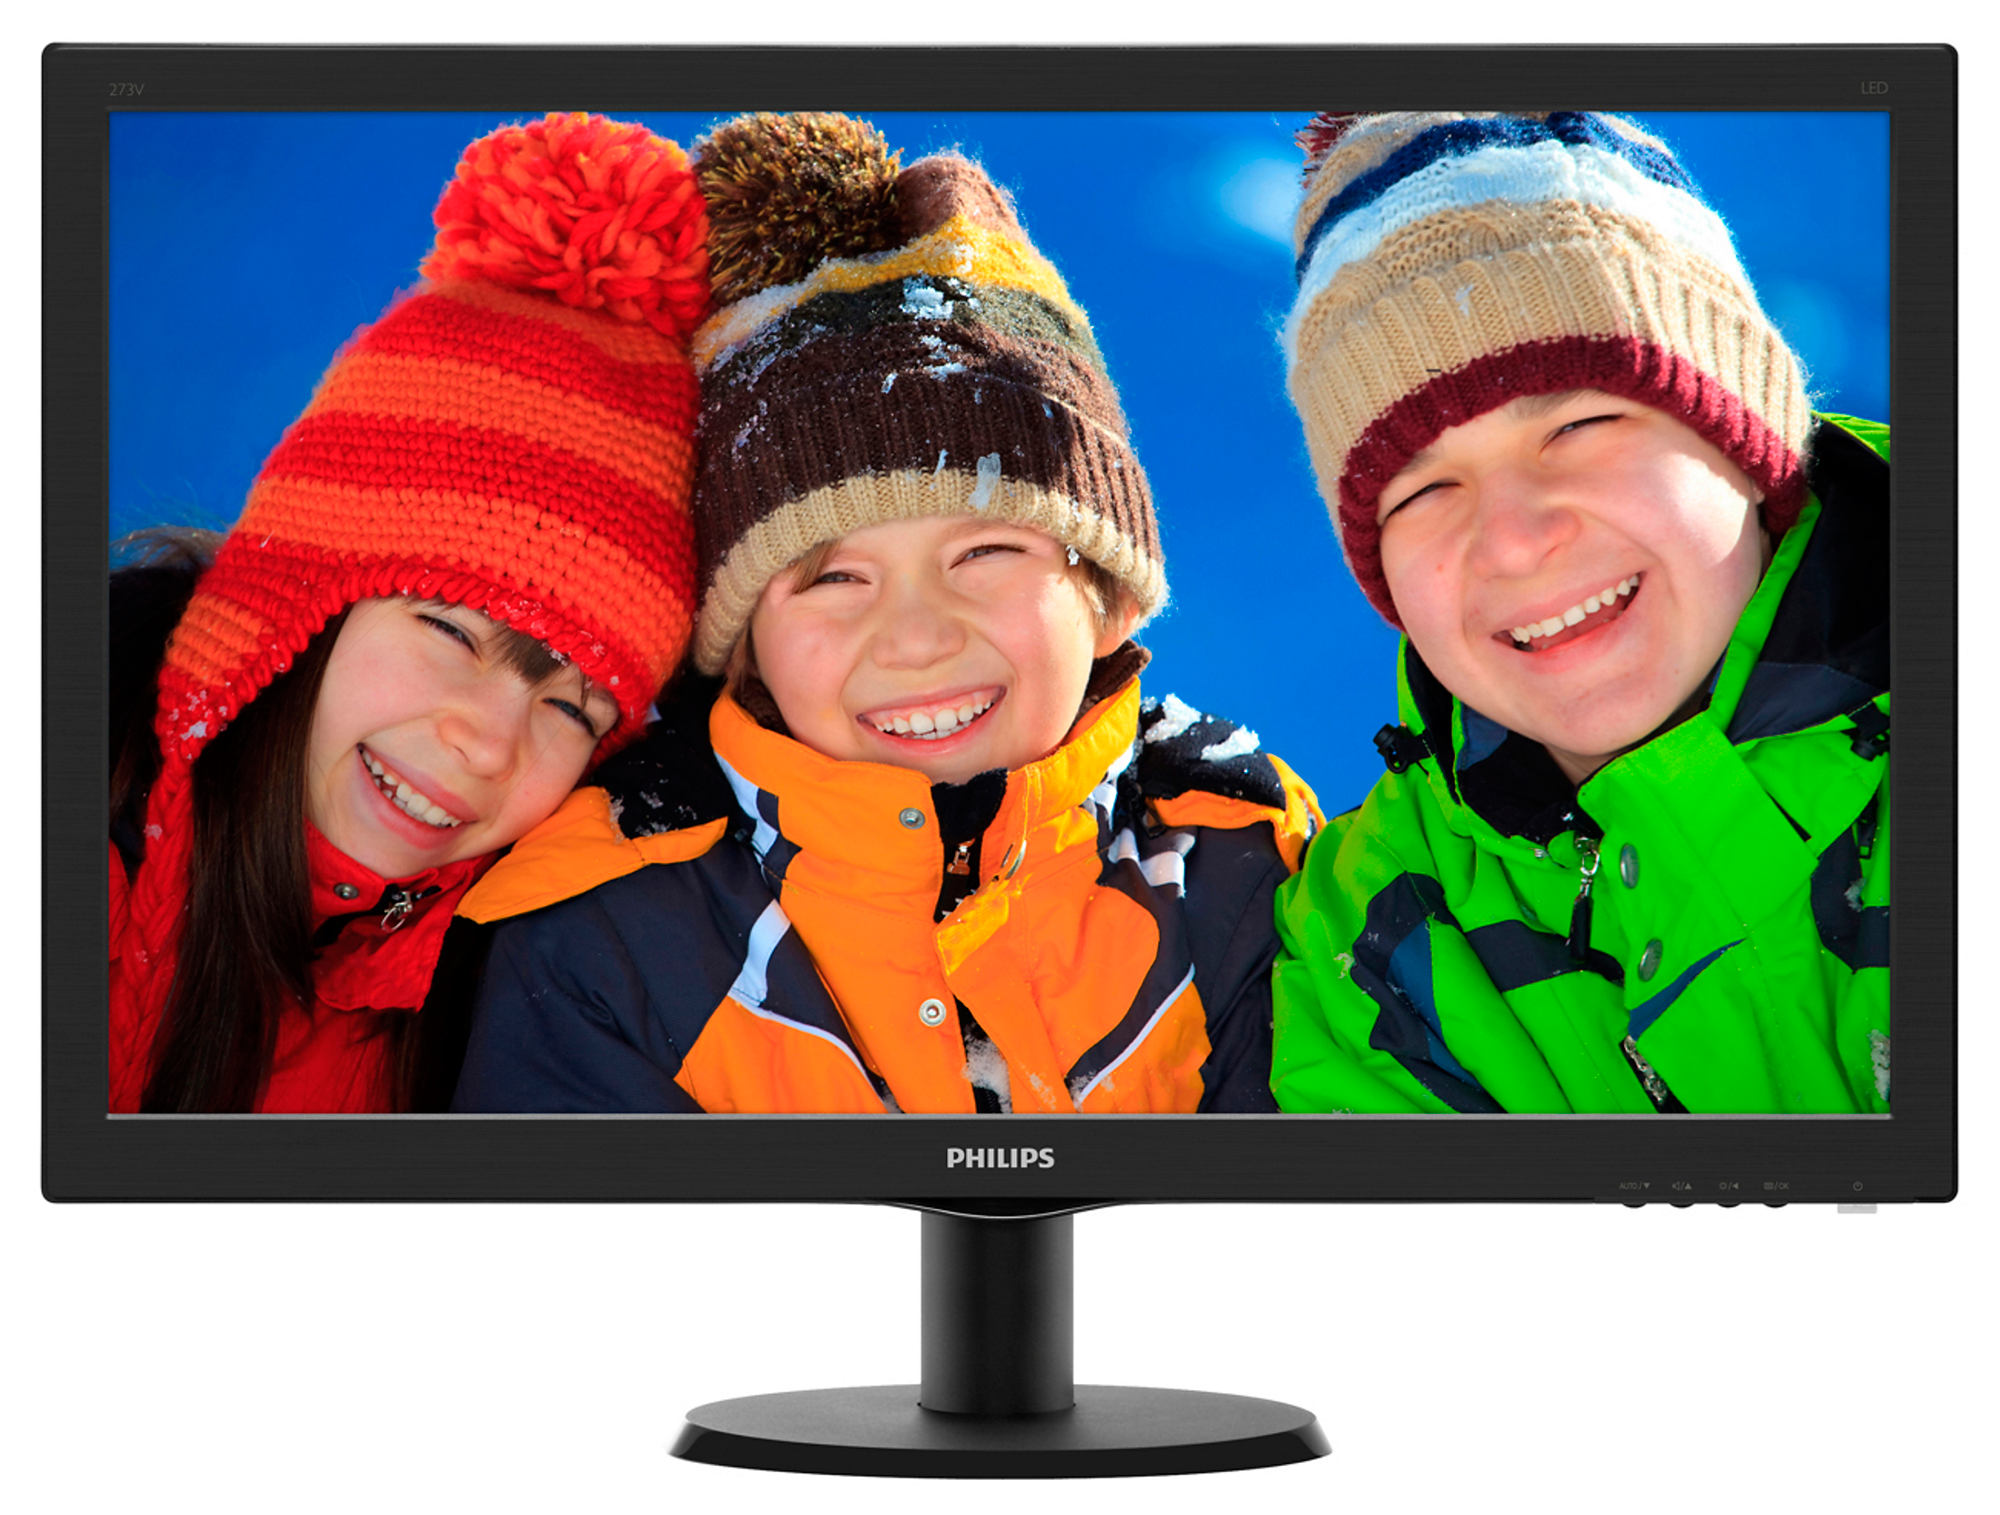 Monitor LED Philips 273V5LHAB 27 1920x1080 16:9 negru carbonite